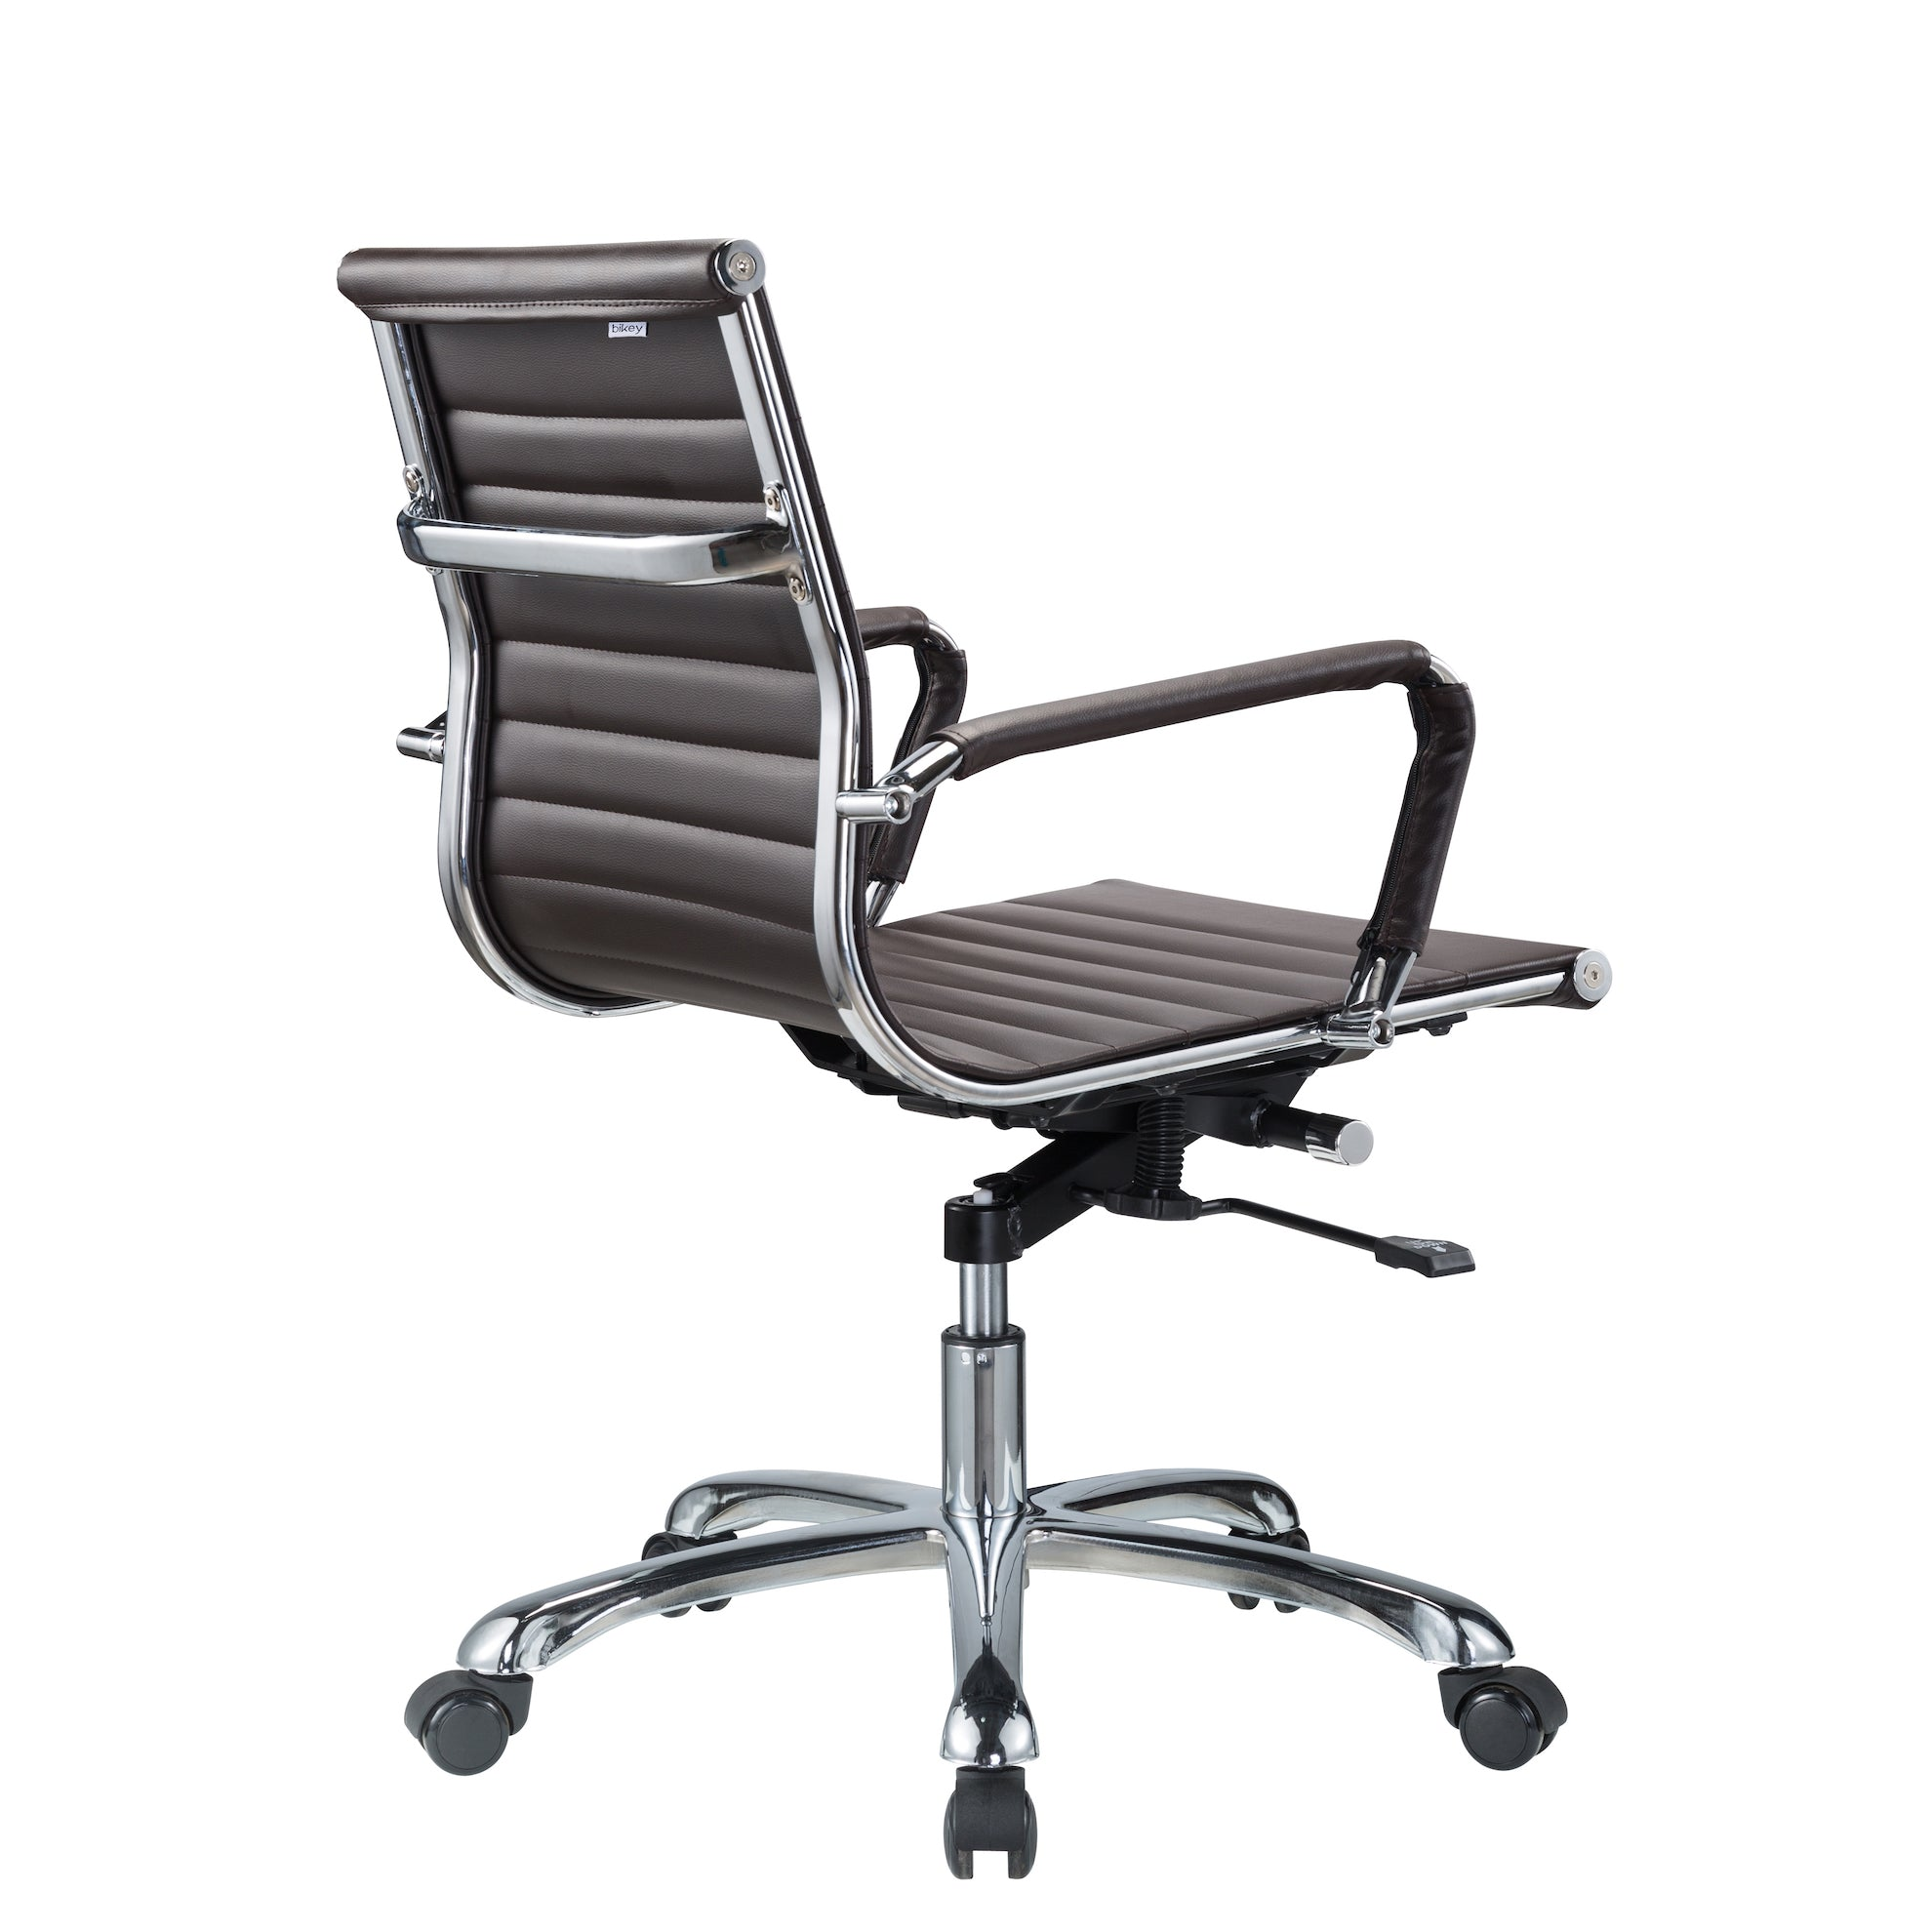 Bikey Nova Collection Mid Back Leather Conference fice Chair